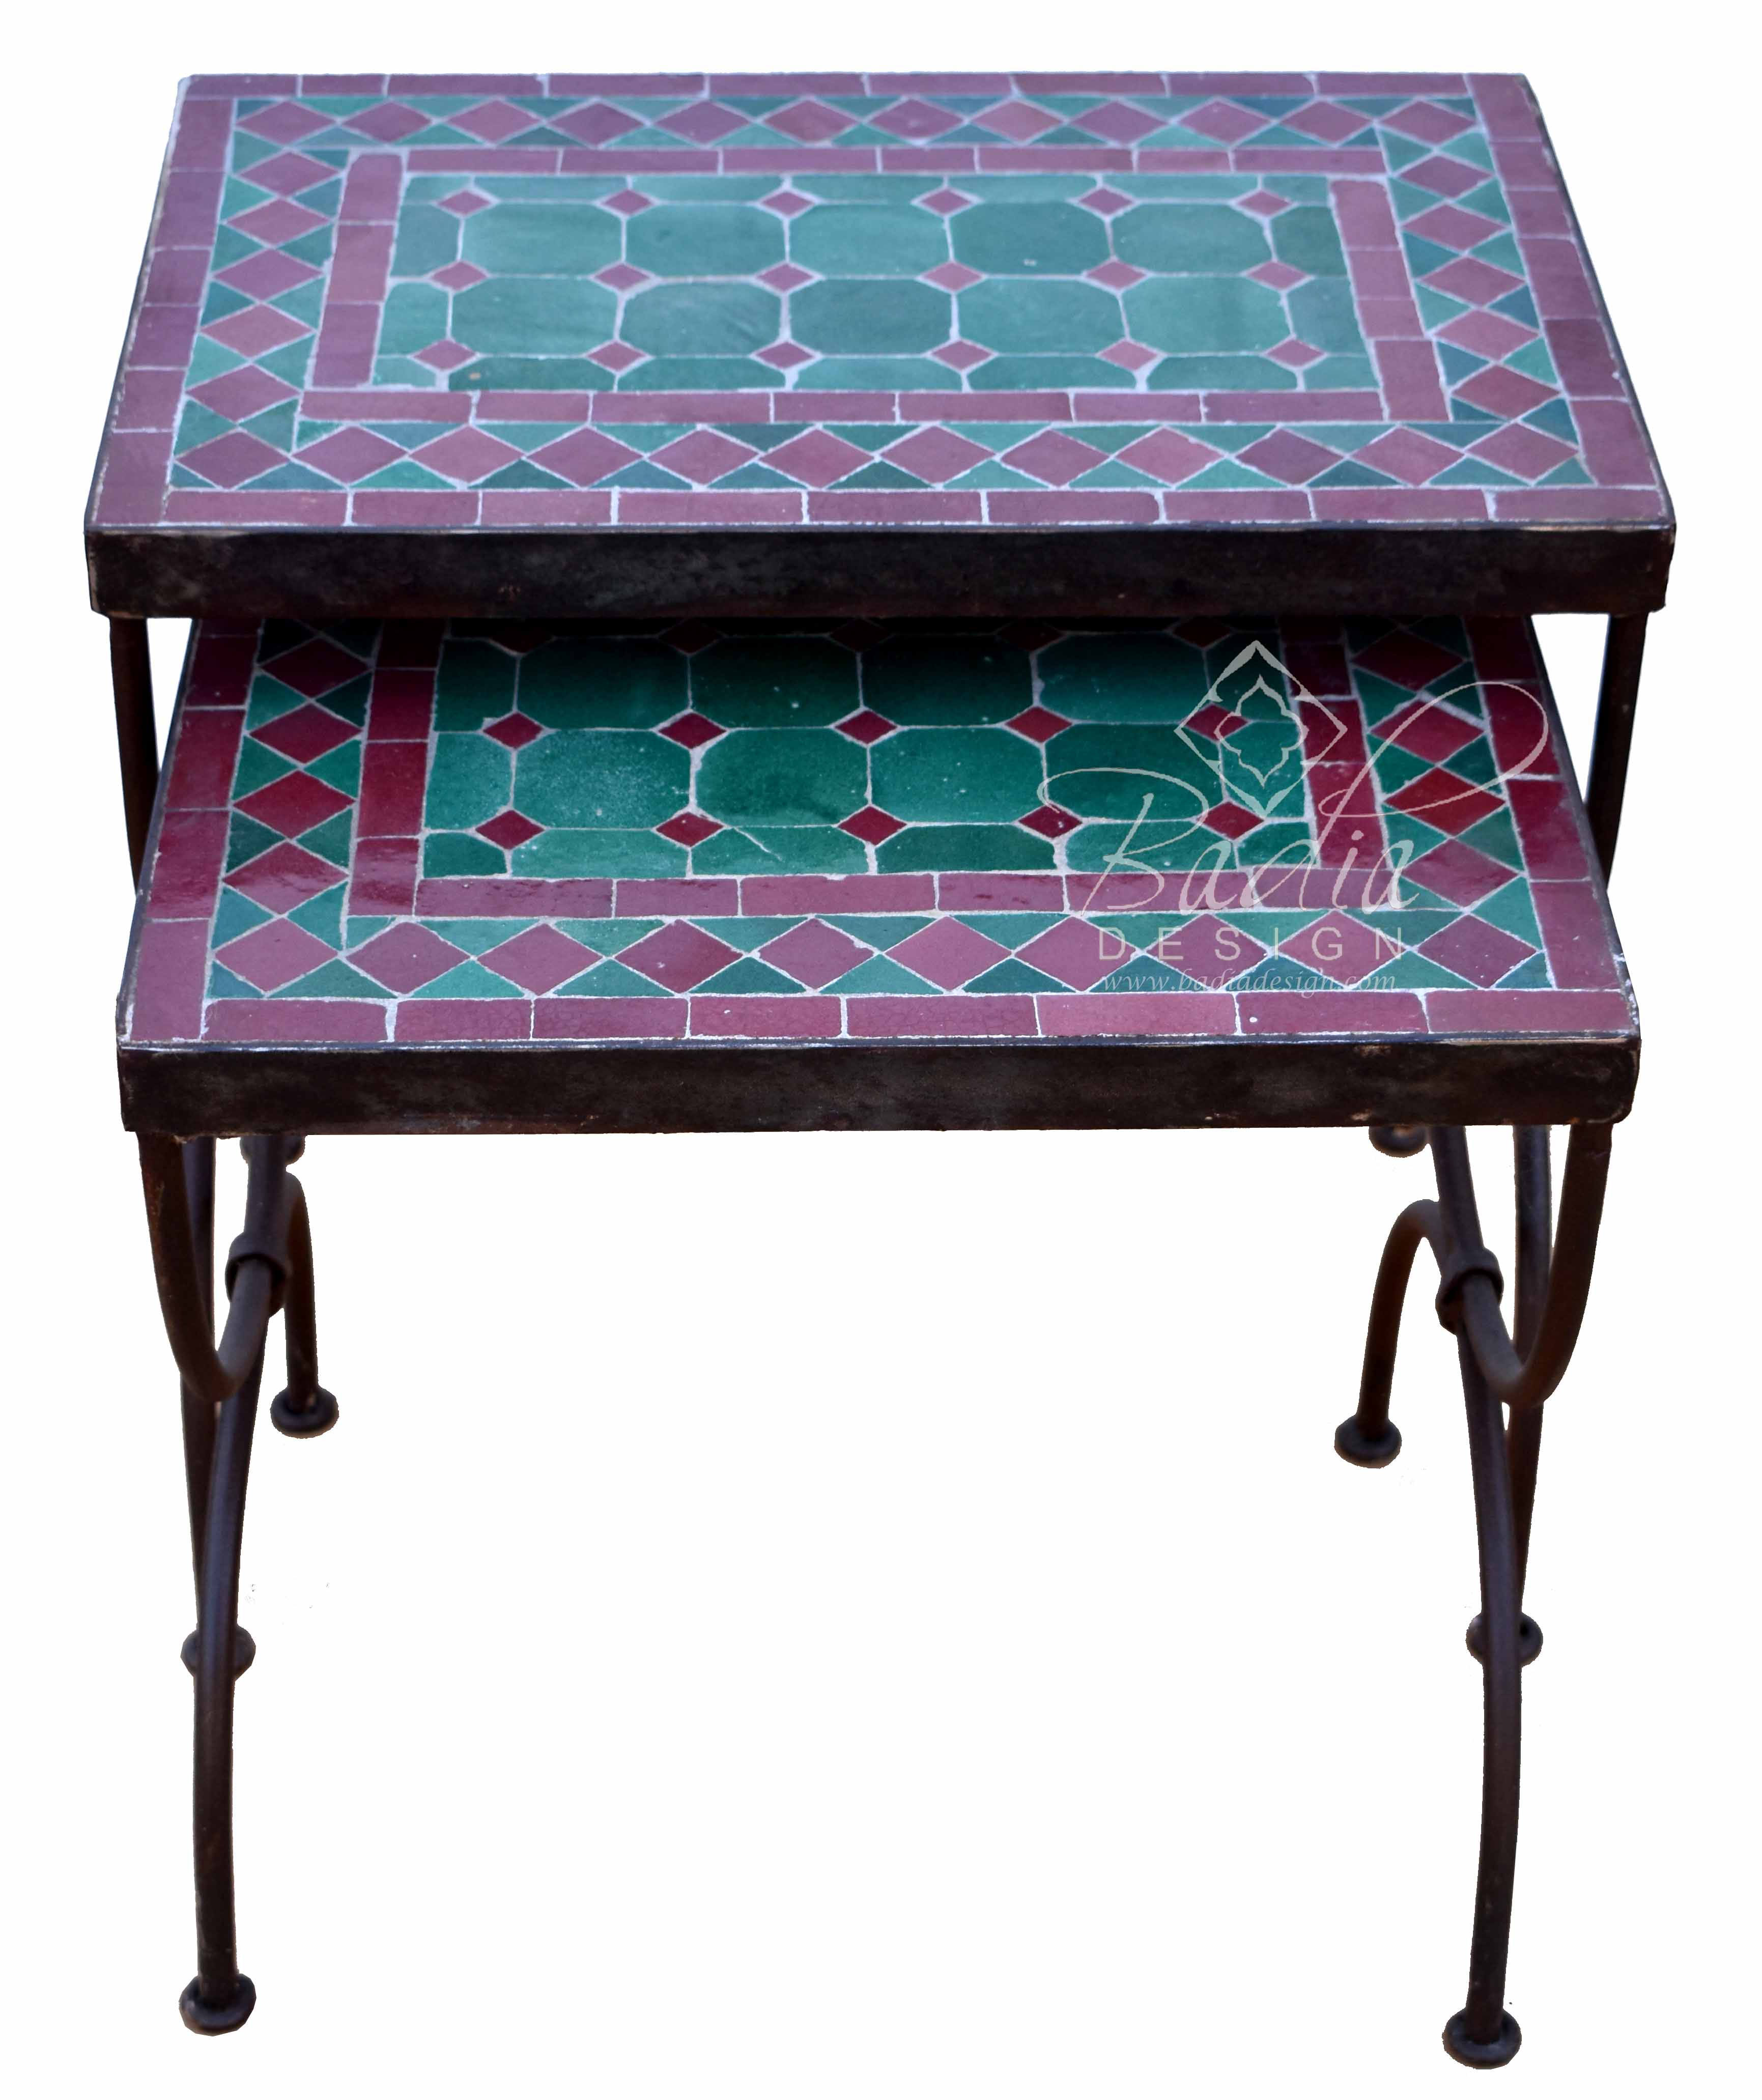 green-red-moroccan-nesting-tile-tables-mt768.jpg